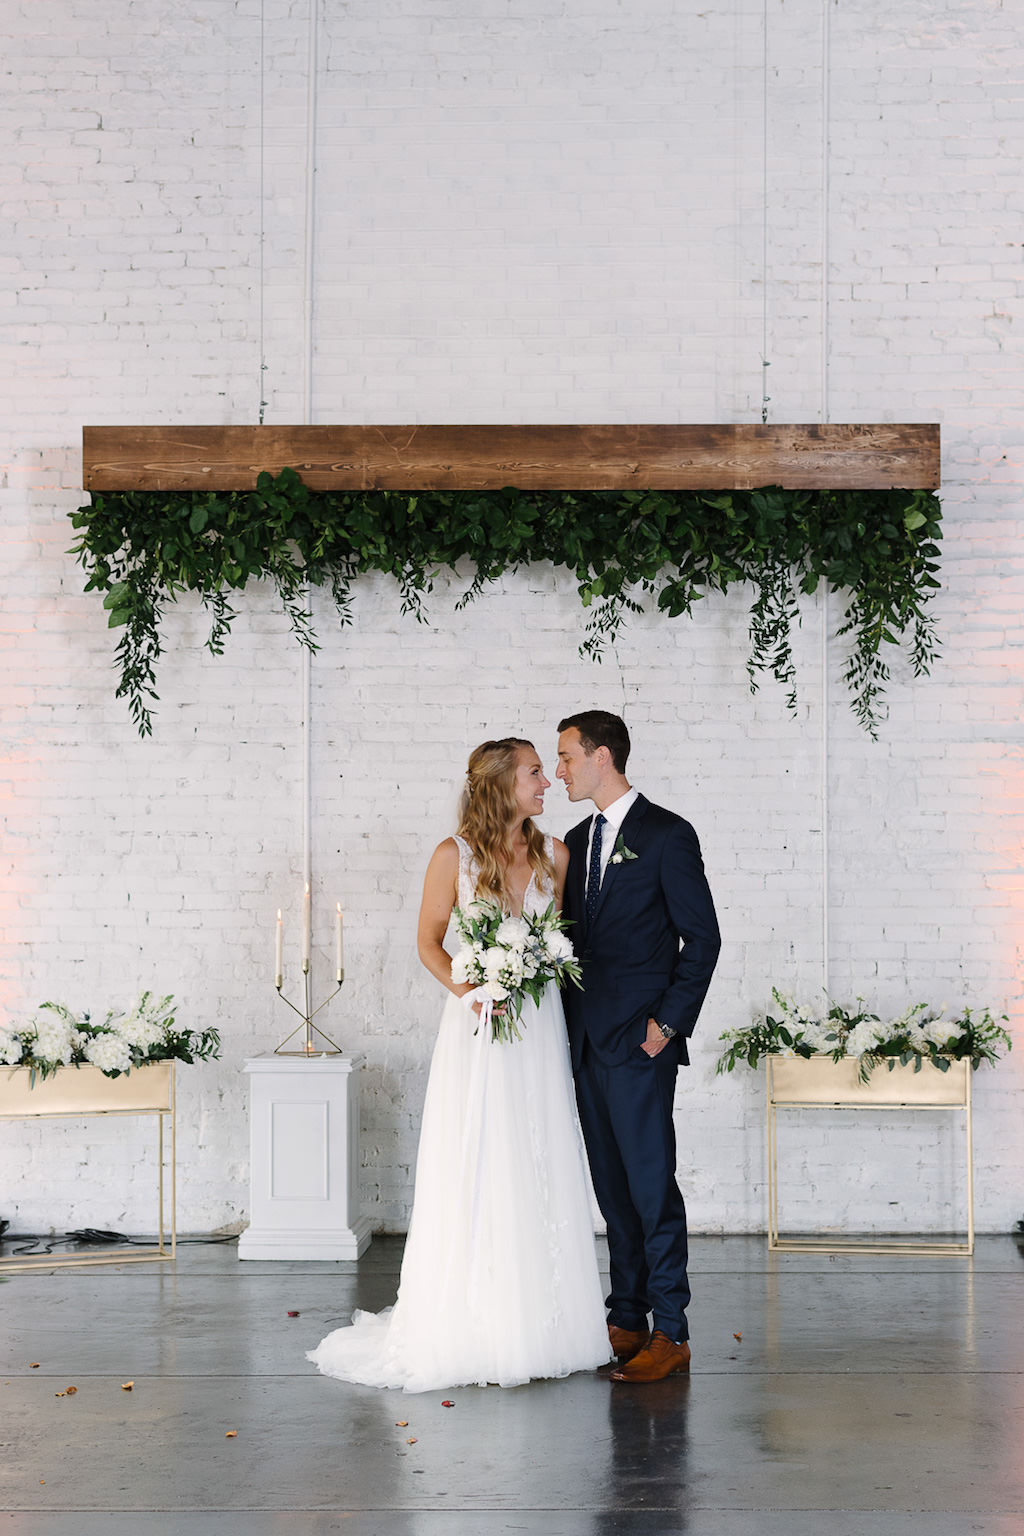 Romantic Bride and Groom Wedding Portrait, Groom in Navy Blue Suit and White Floral Boutonniere, Bride in White A-Line Illusion Tank Top Strap Plunging V-Neckline and Lace Bodice Wedding Dress with White Floral and Greenery Bouquet, Upside Down Wooden Planterbox and Green Plant, White Pedestal with Gold Candlestick, Gold Planter with White and Green Florals | Lakeland Wedding Venue Haus 820